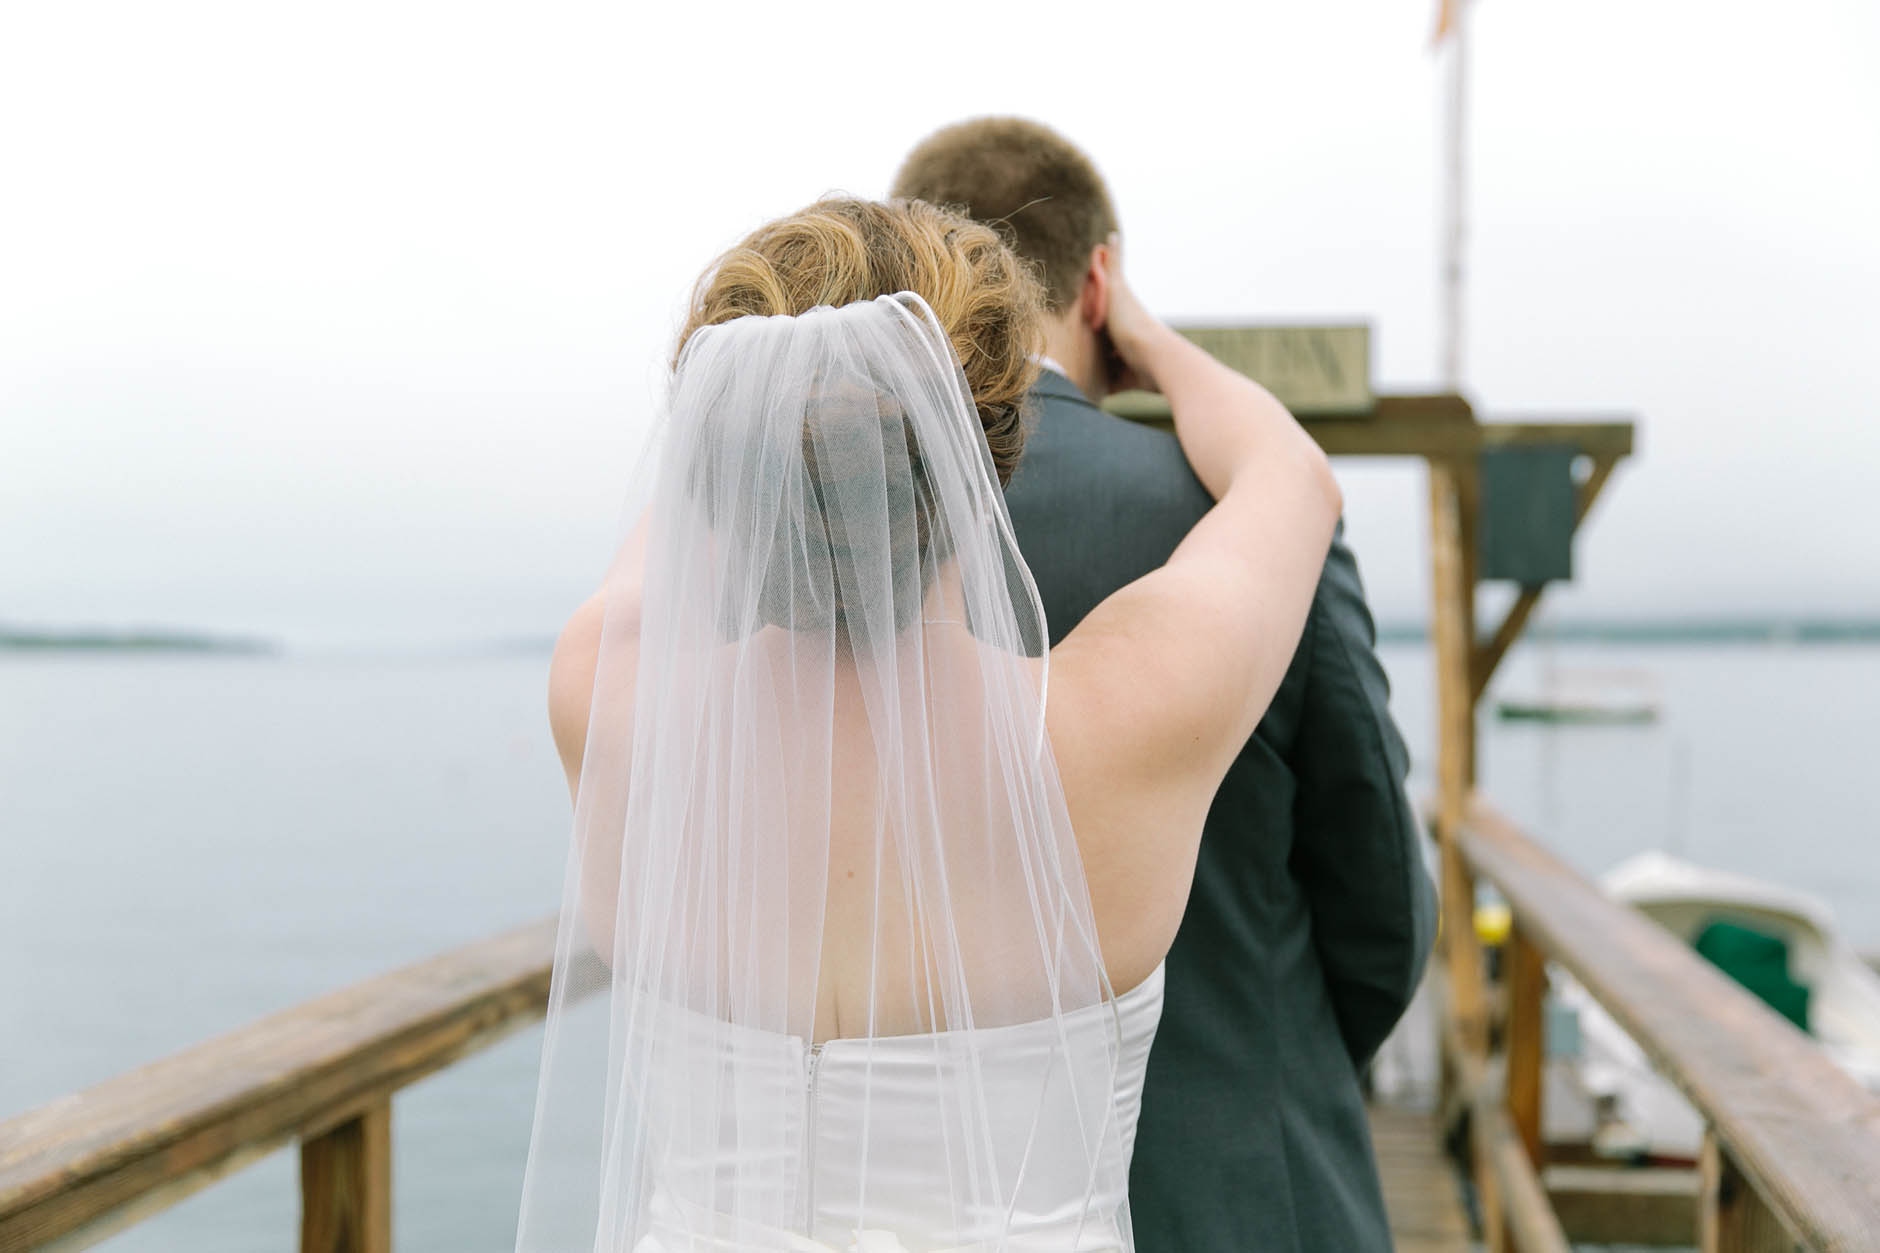 A summer wedding at the Spruce Point Inn in Coastal Maine with Yasmeen & Mike.